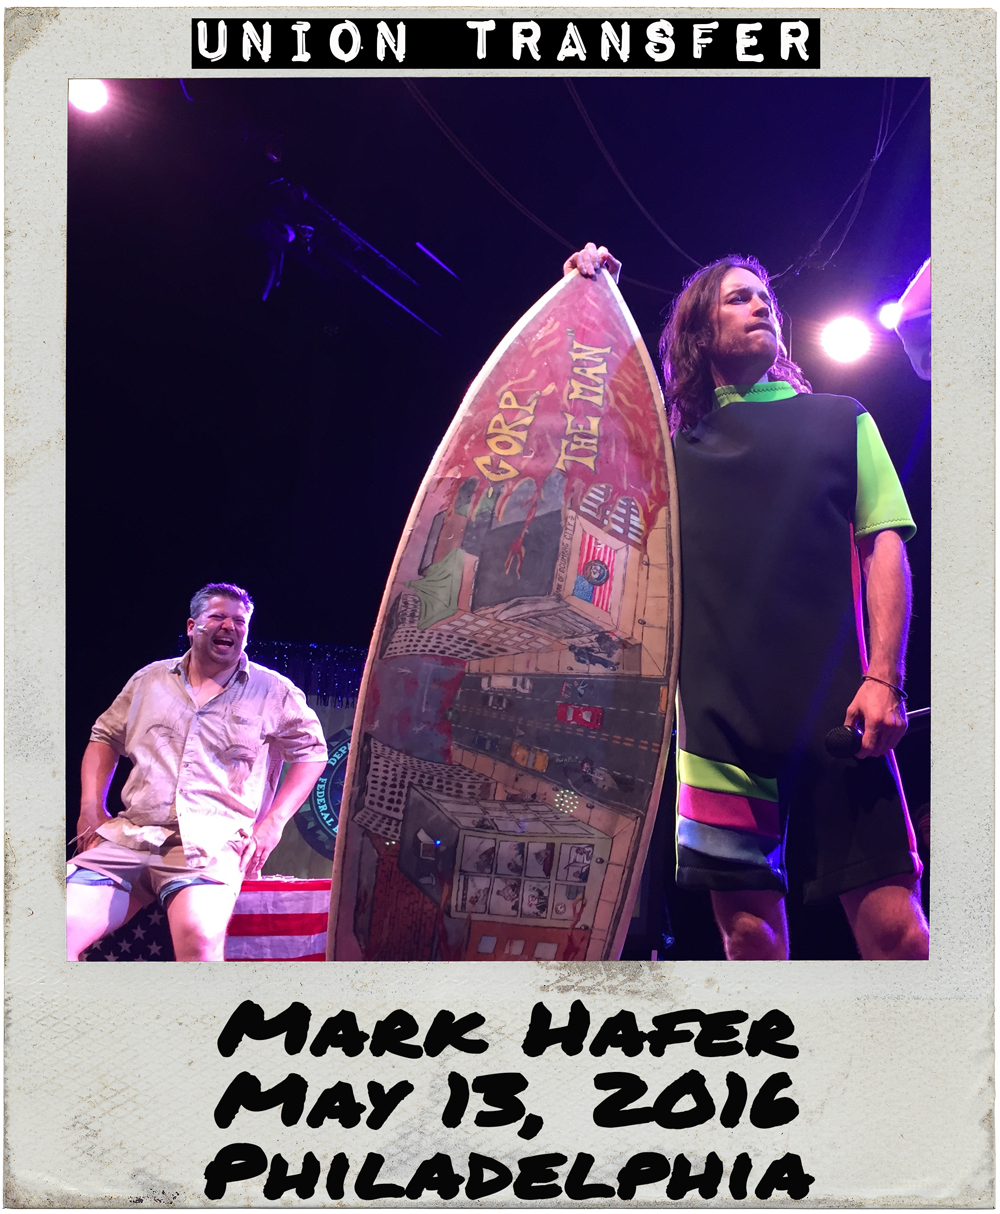 05_13_16_Mark-Hafer_Union-Transfer_Philly.png